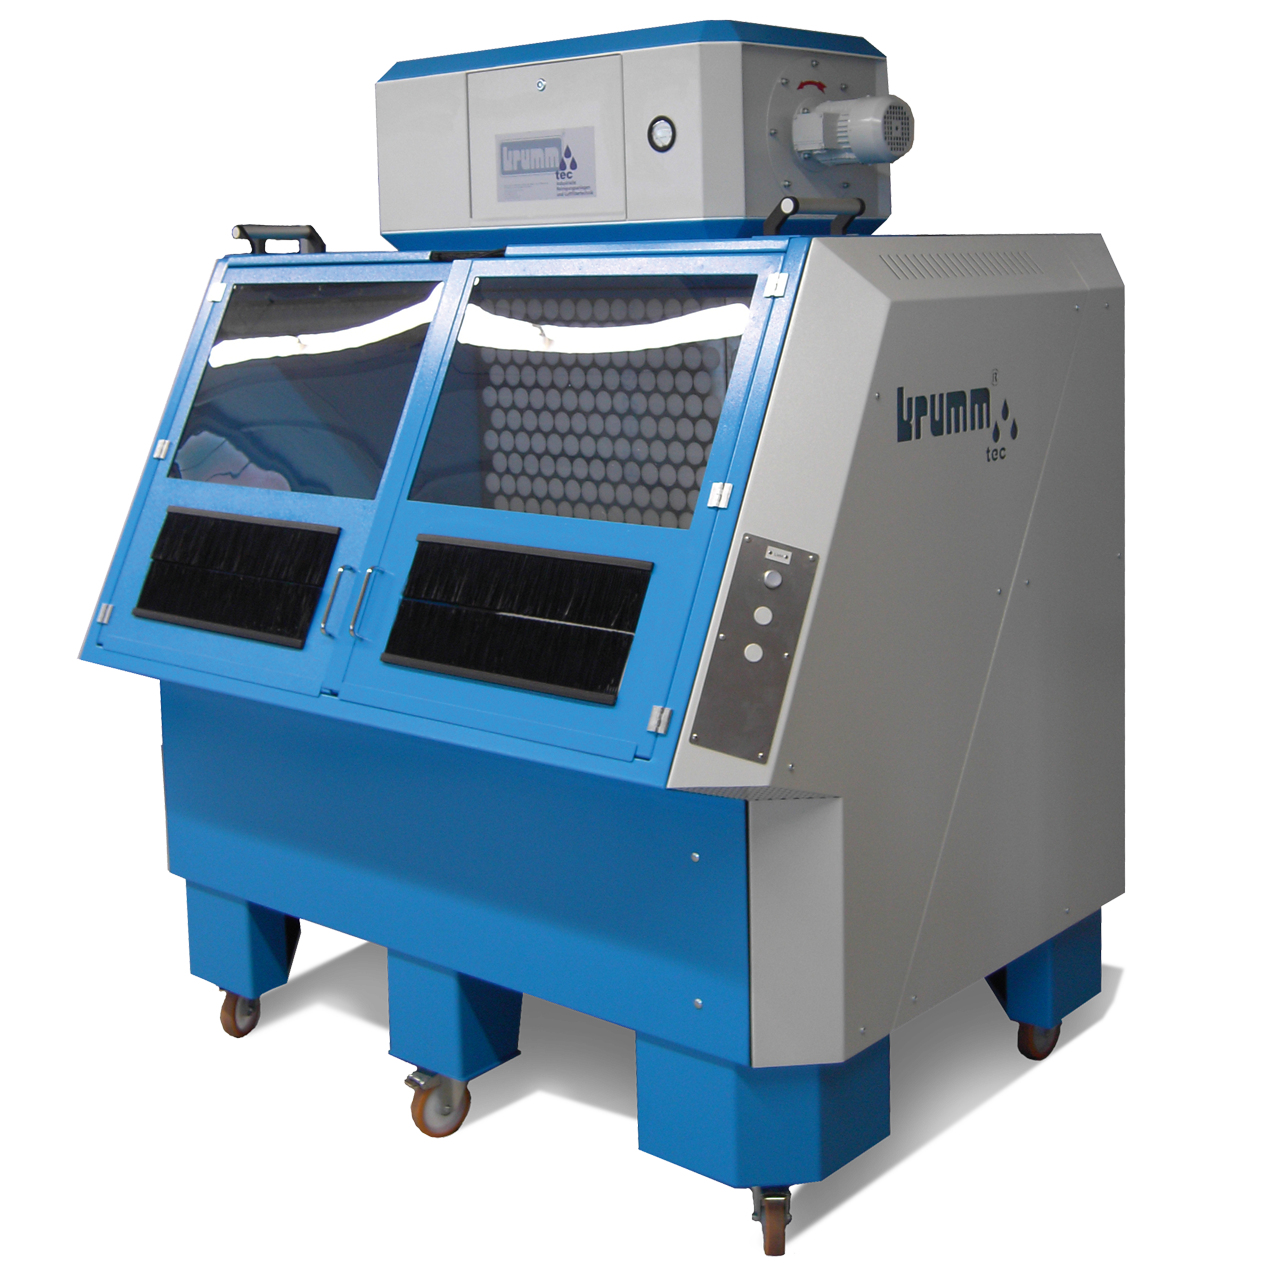 RKK 1600 ST - Krumm-tec – Cleaning and Filter Solutions